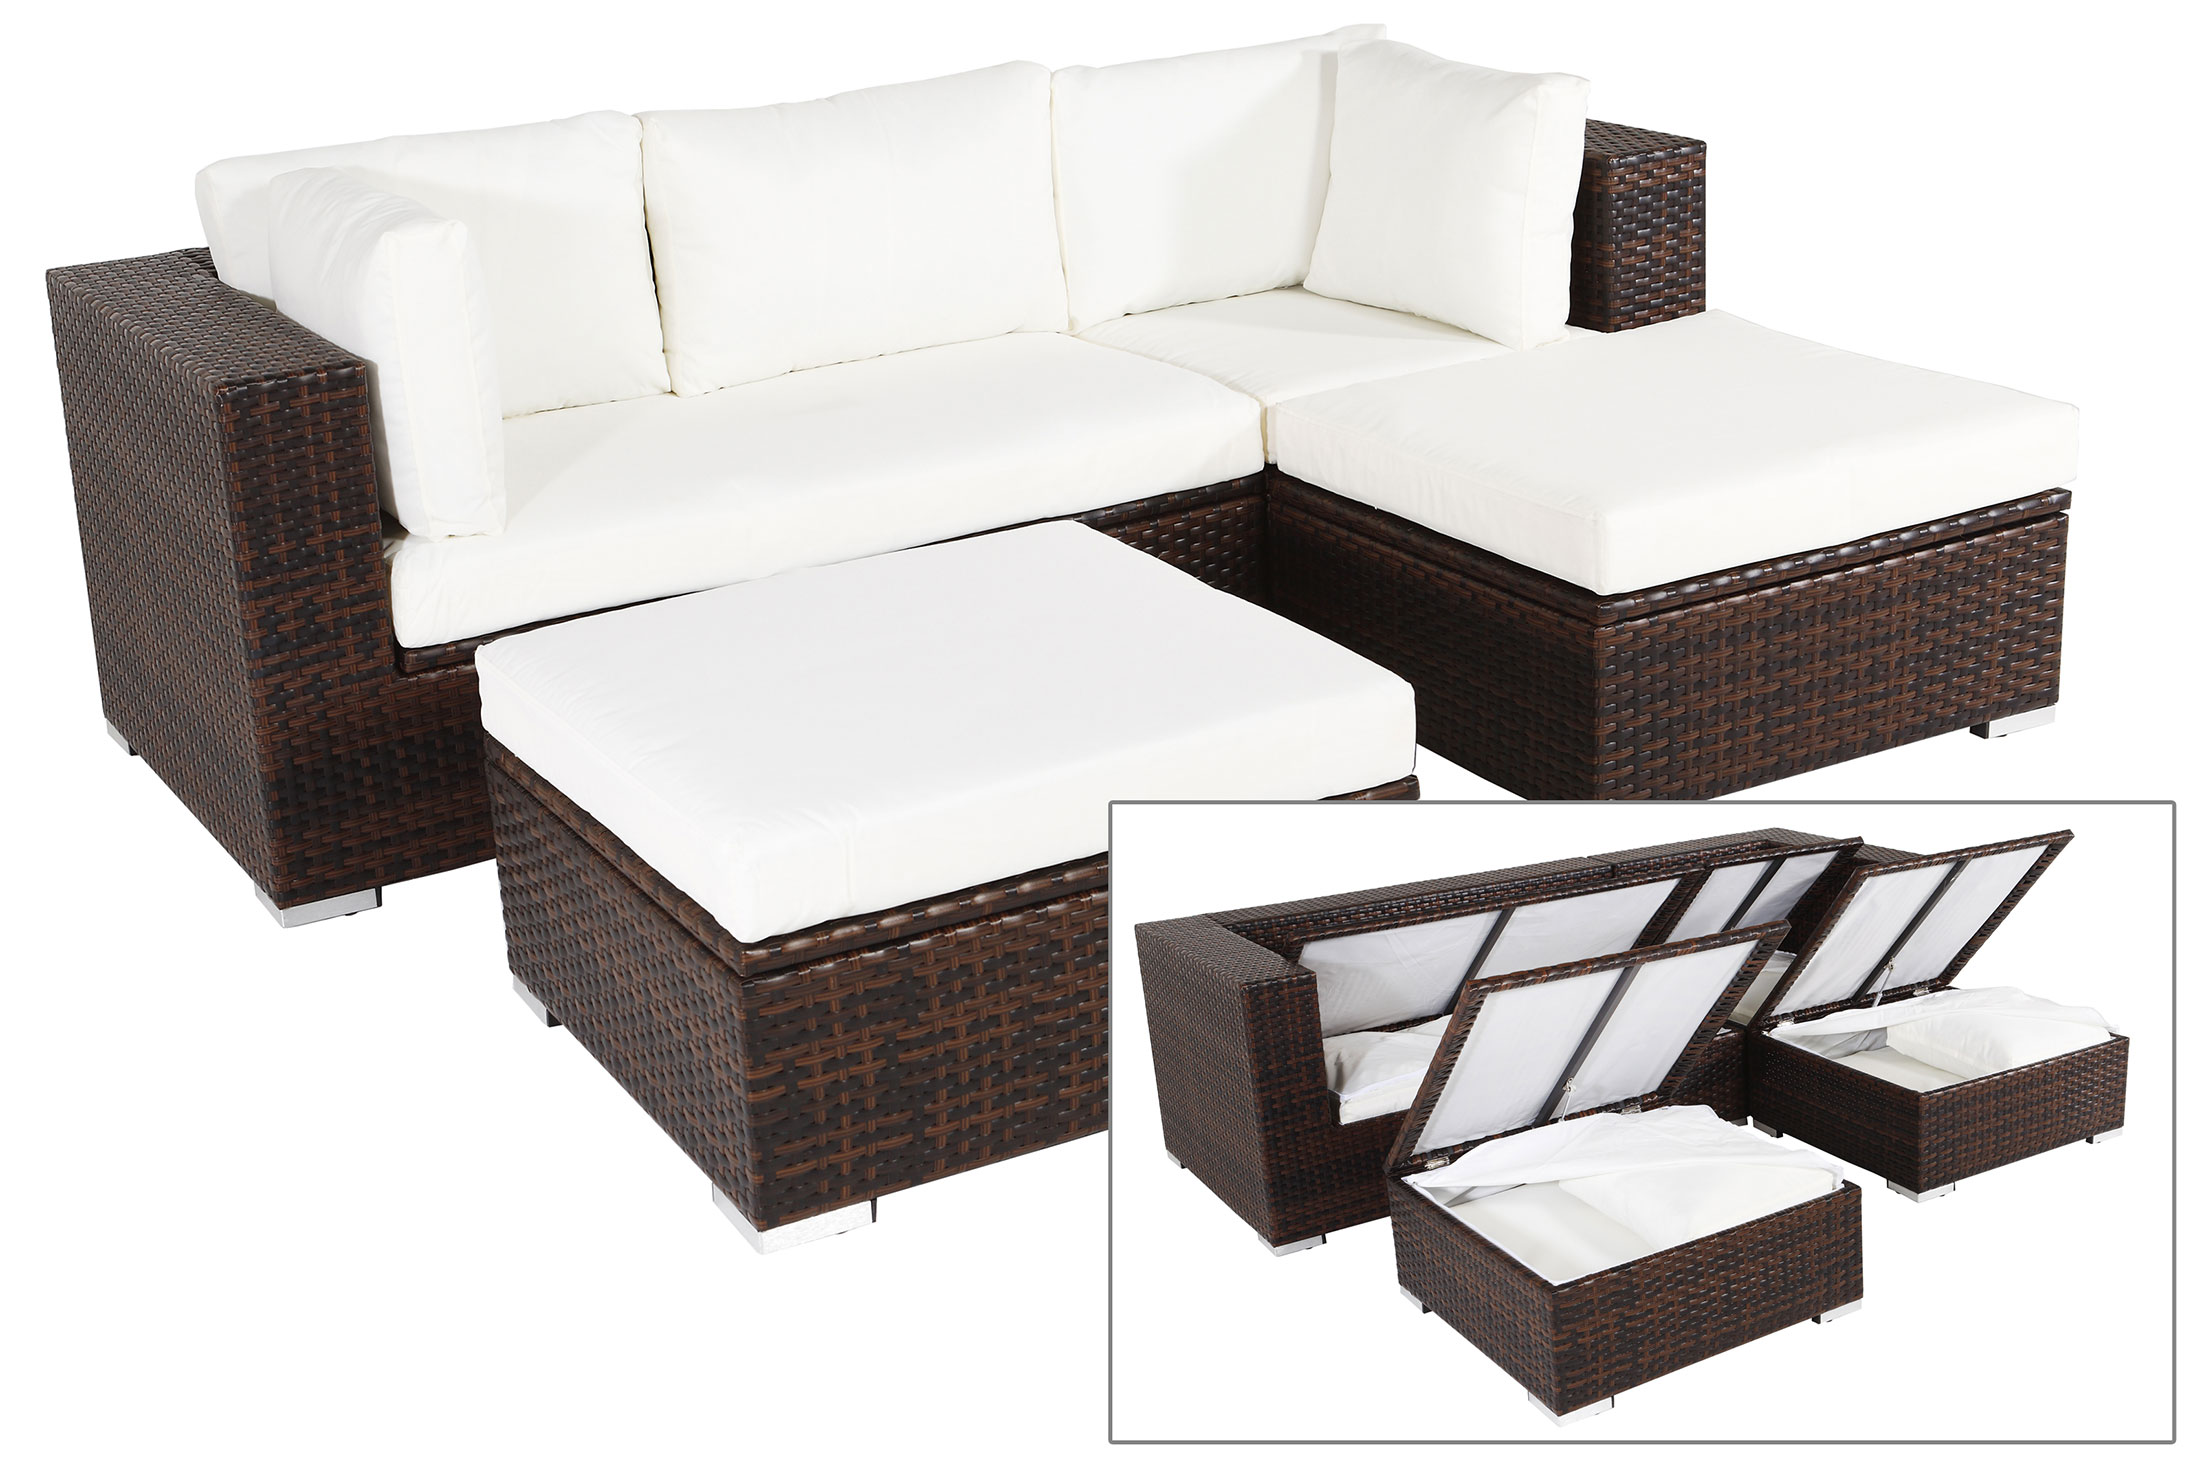 best gartenmobel set polyrattan braun images house. Black Bedroom Furniture Sets. Home Design Ideas